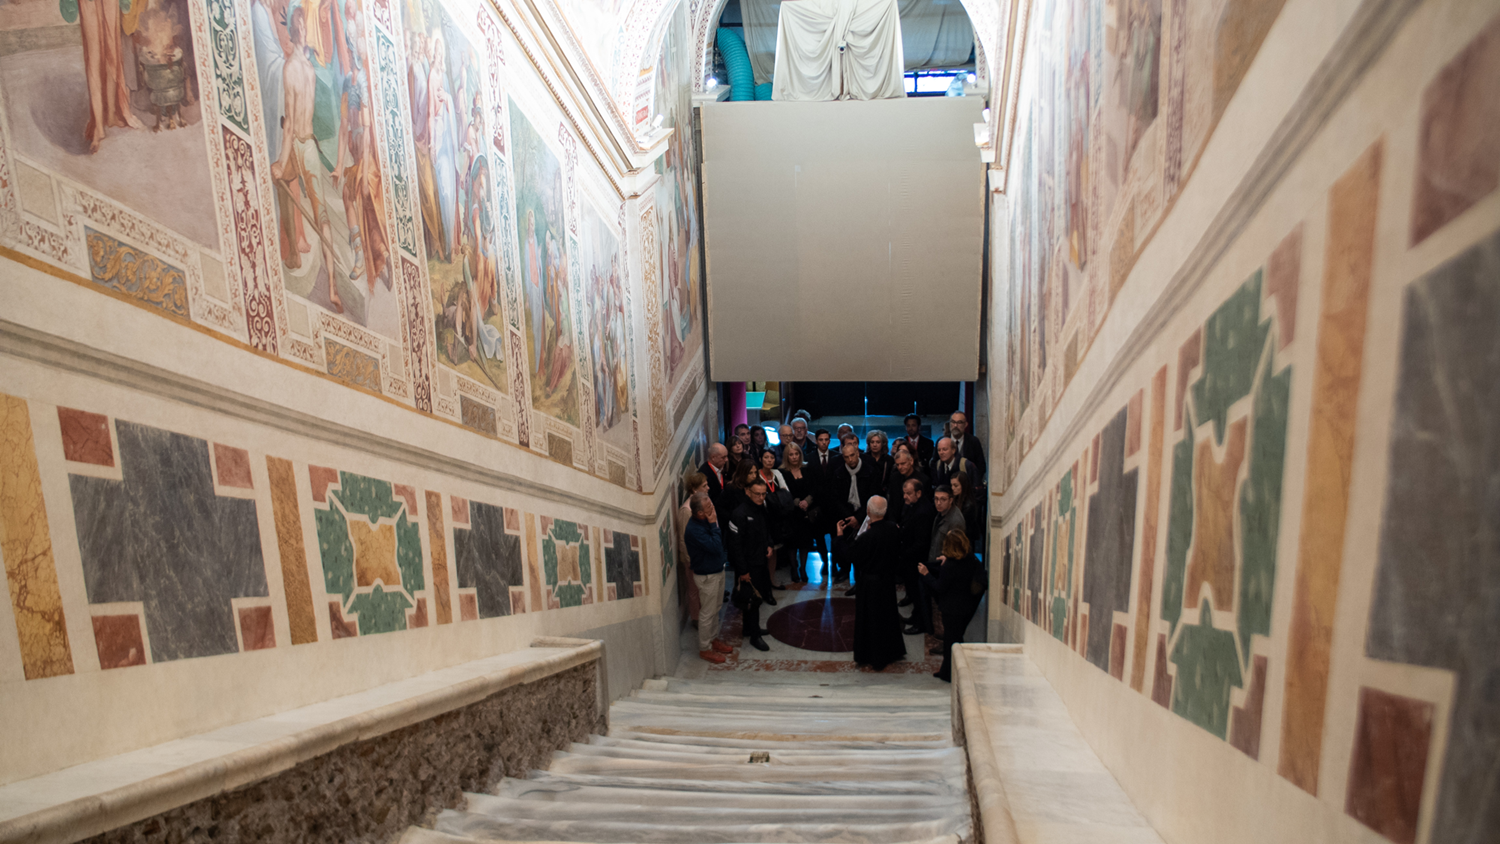 iGuzzini enhances the Pontifical Sanctuary of the Holy Stairs  with new lighting